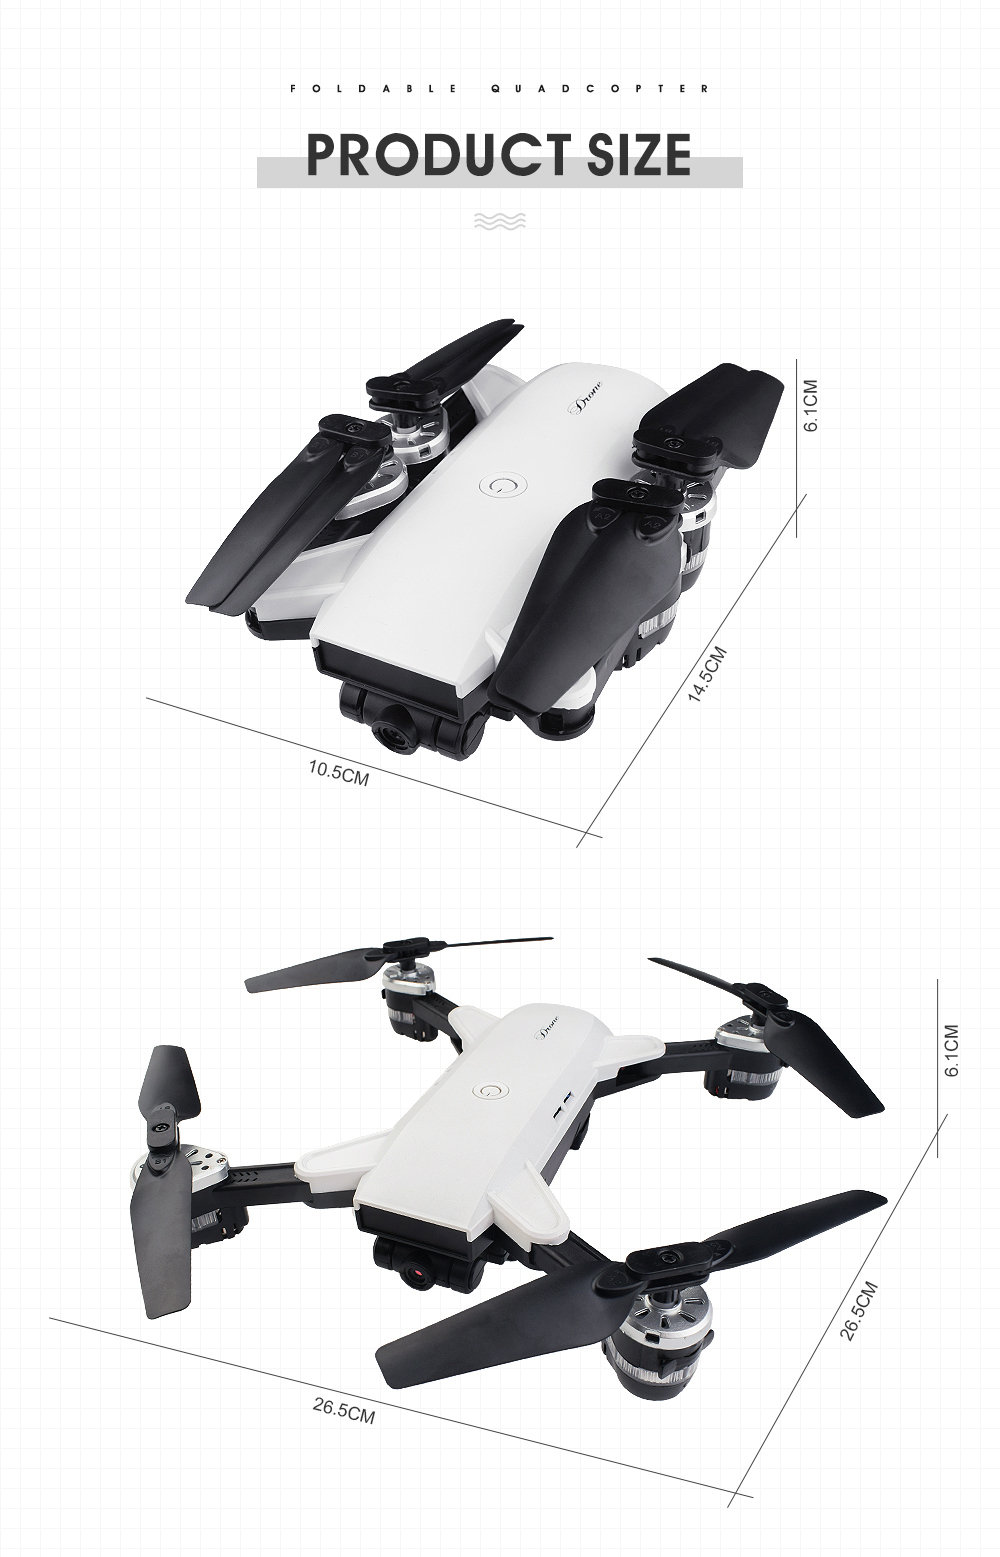 19.New 2.4Ghz 4ch foldable FPV rc drone with 2MP wide angle wifi camera